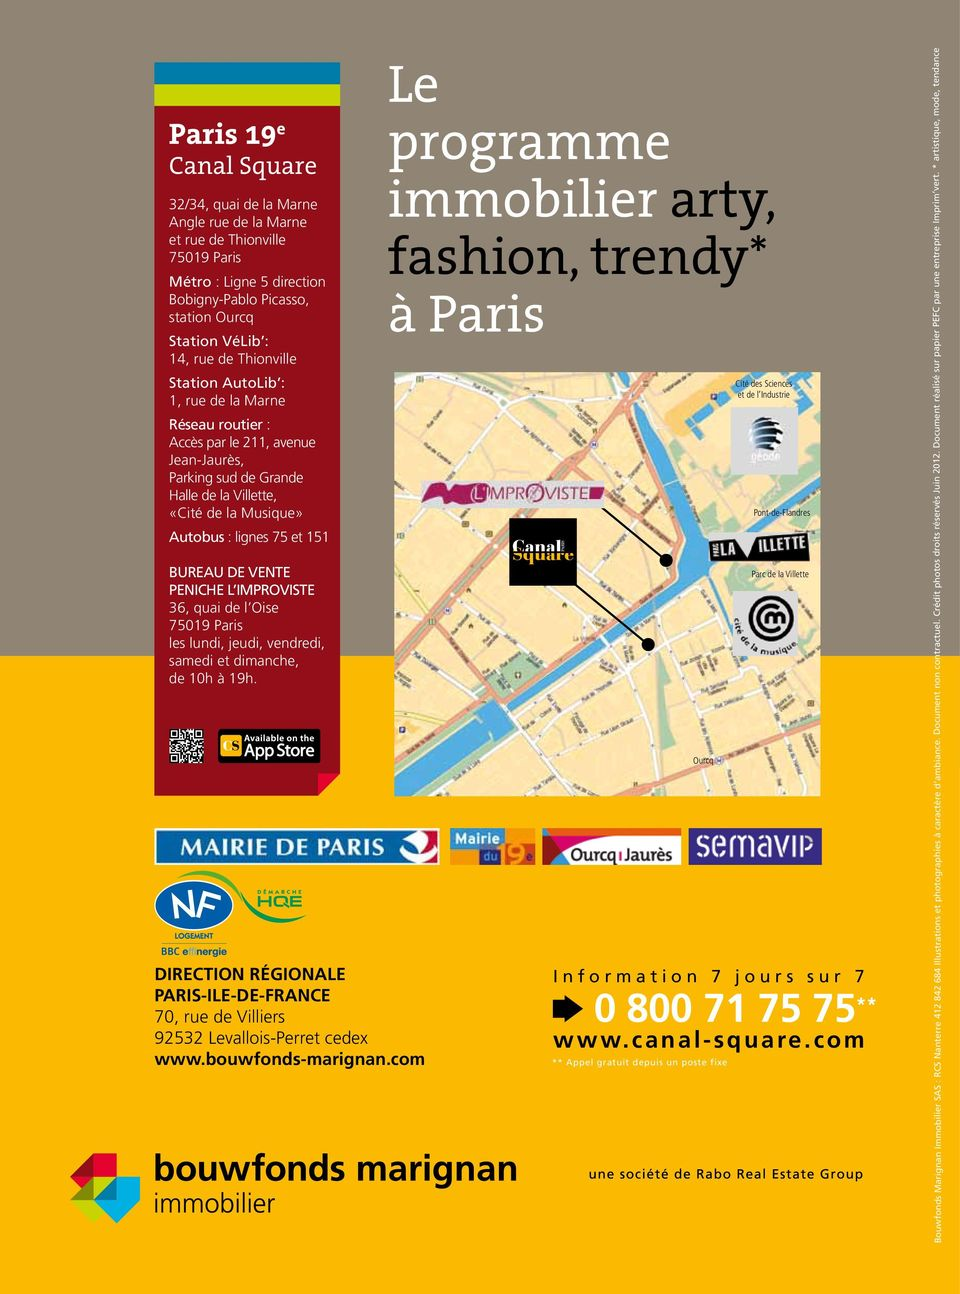 programme immobilier arty, fashion, trendy* à Paris Cité des Sciences et de l Industrie Pont-de-Flandres Bouwfonds Marignan Immobilier SAS : RCS Nanterre 412 842 684 Illustrations et photographies à